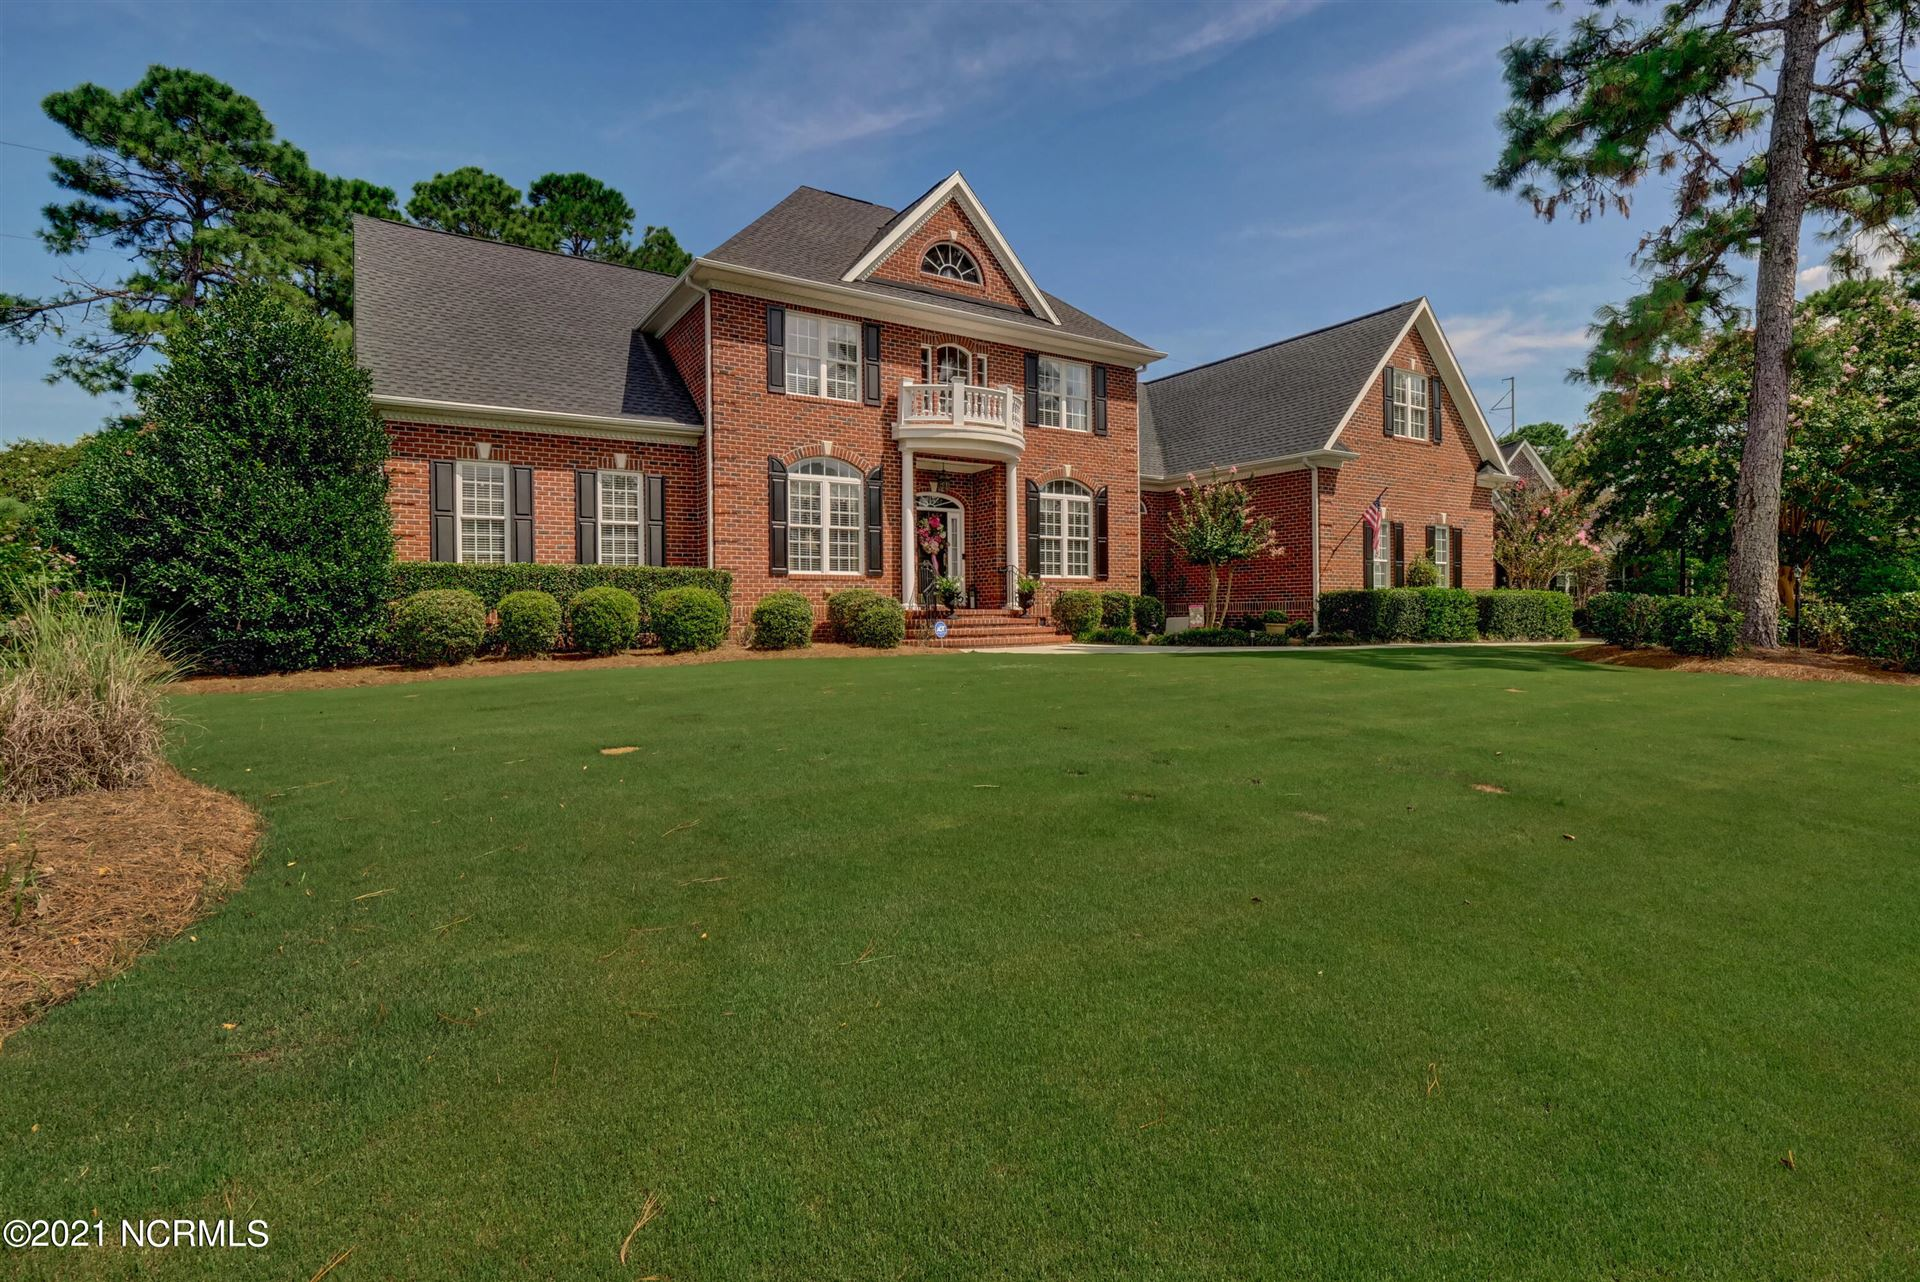 Photo of 4301 Chadsford Court, Wilmington, NC 28412 (MLS # 100285567)